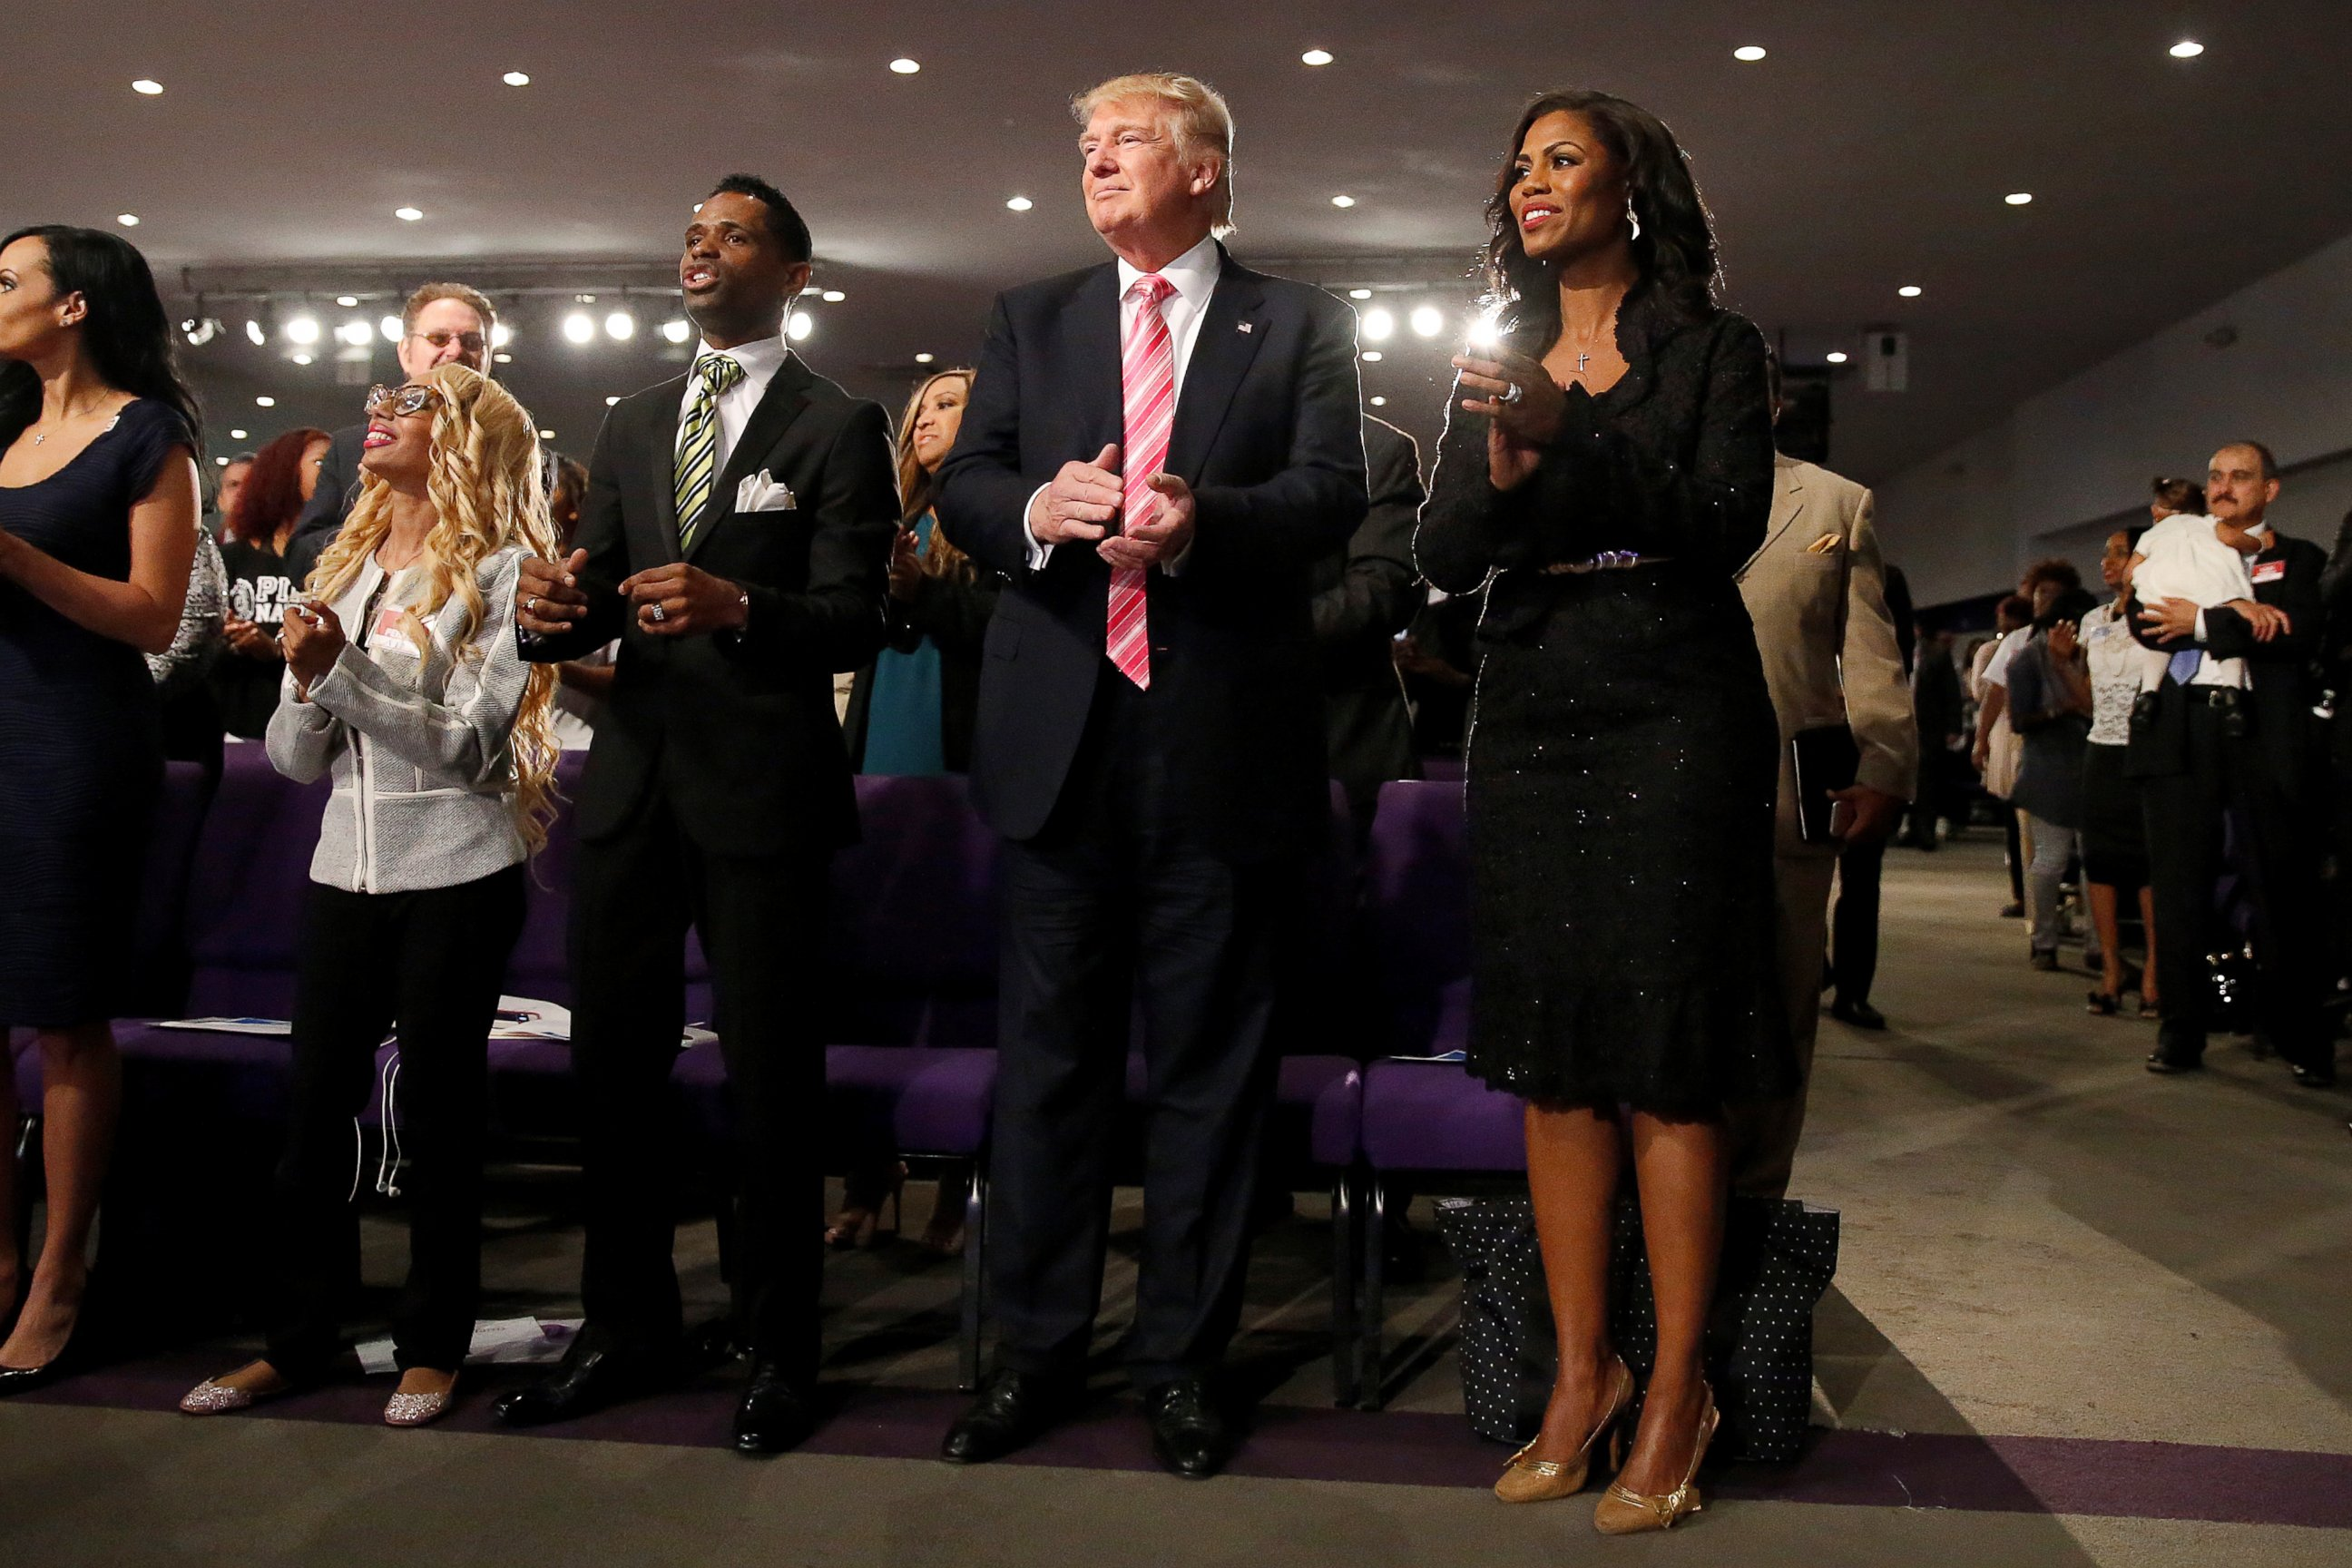 Omarosa Manigault Videos at ABC News Video Archive at abcnews.com